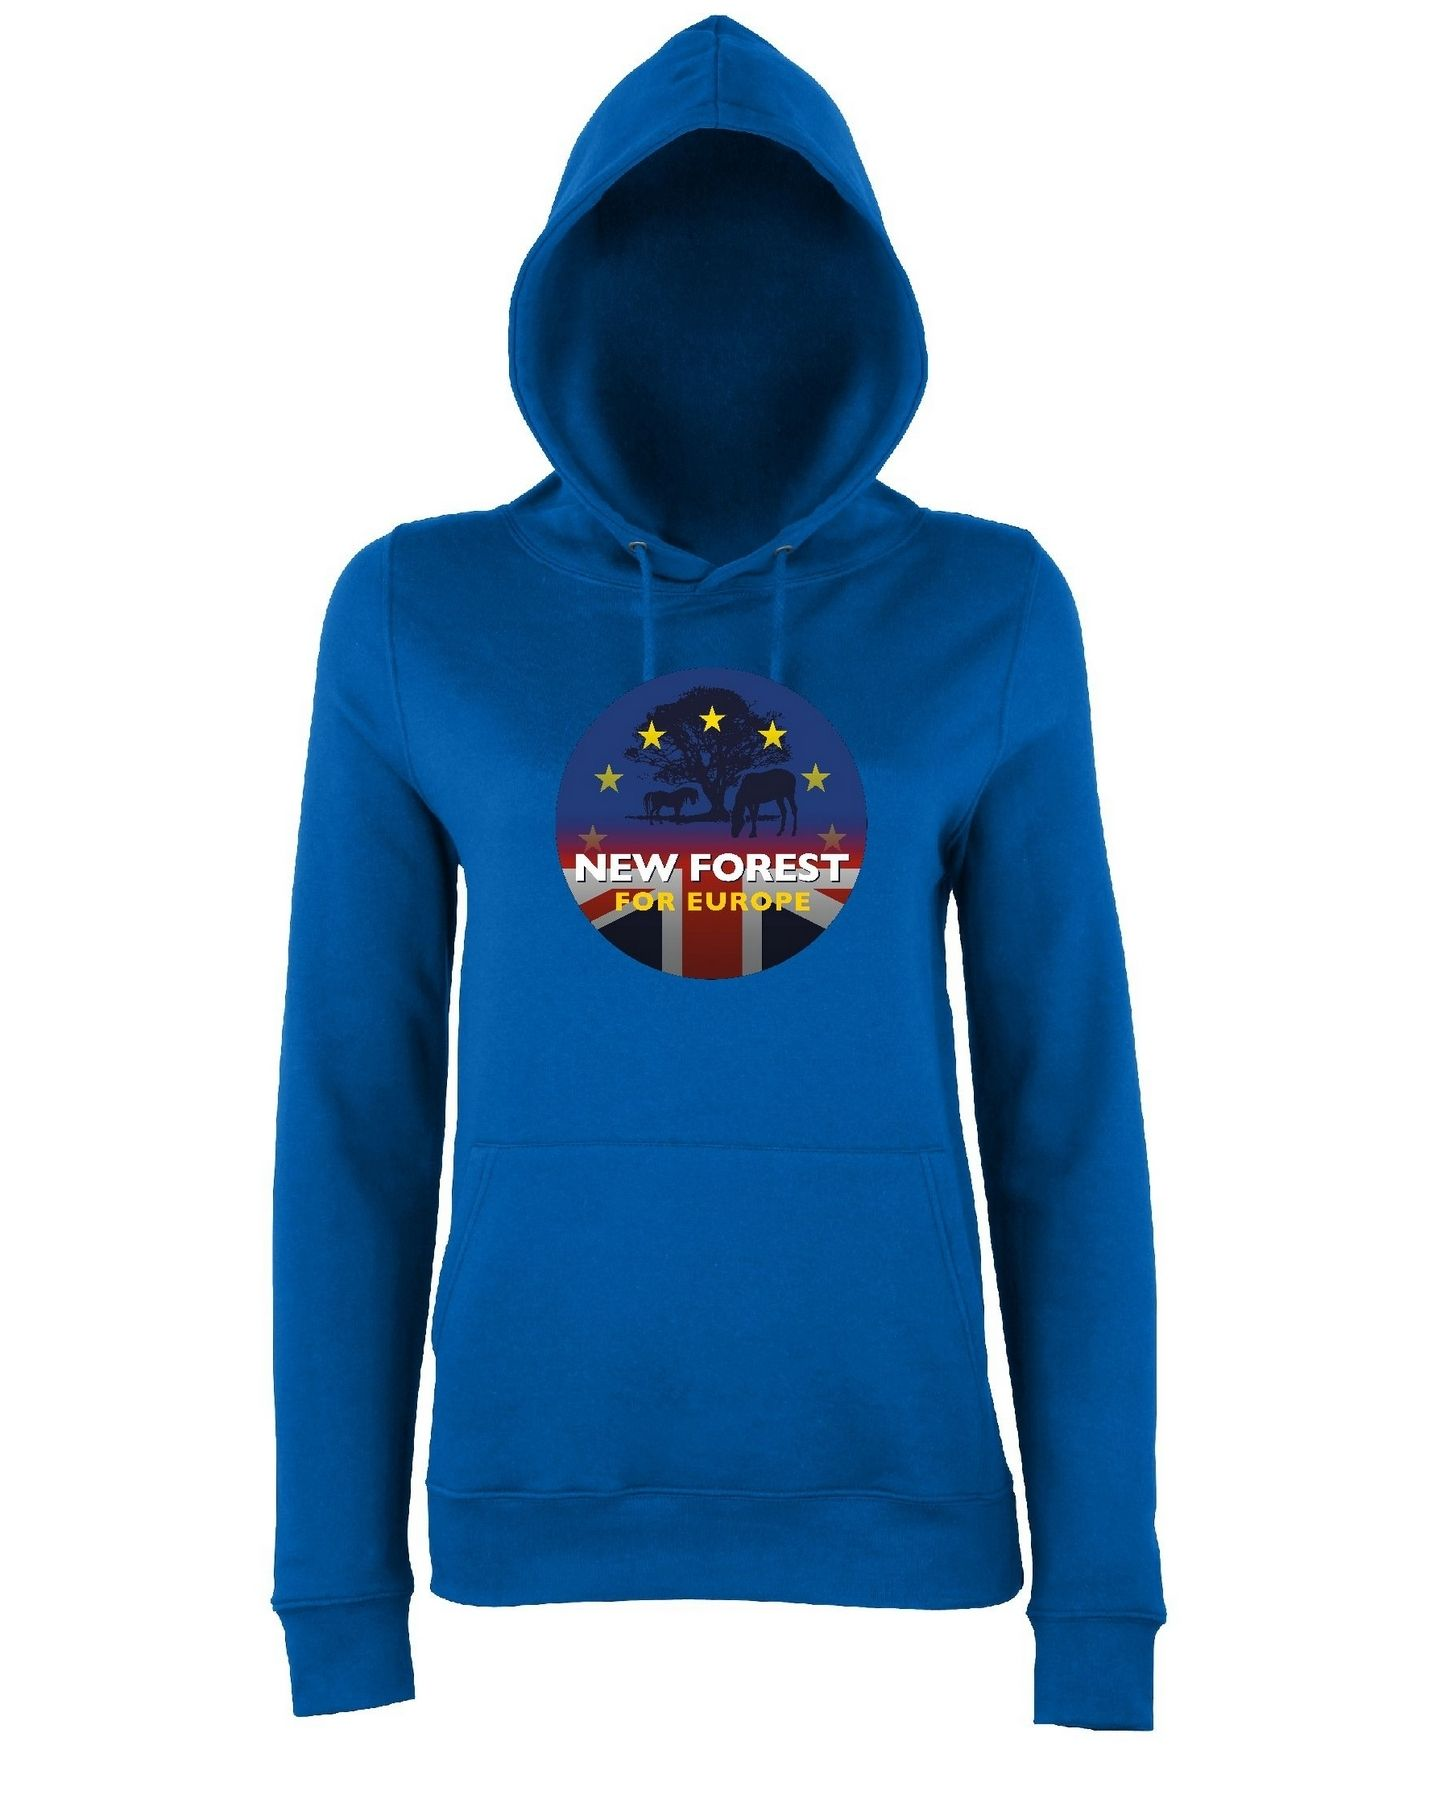 New Forest for Europe – Hoodie (Ladies)